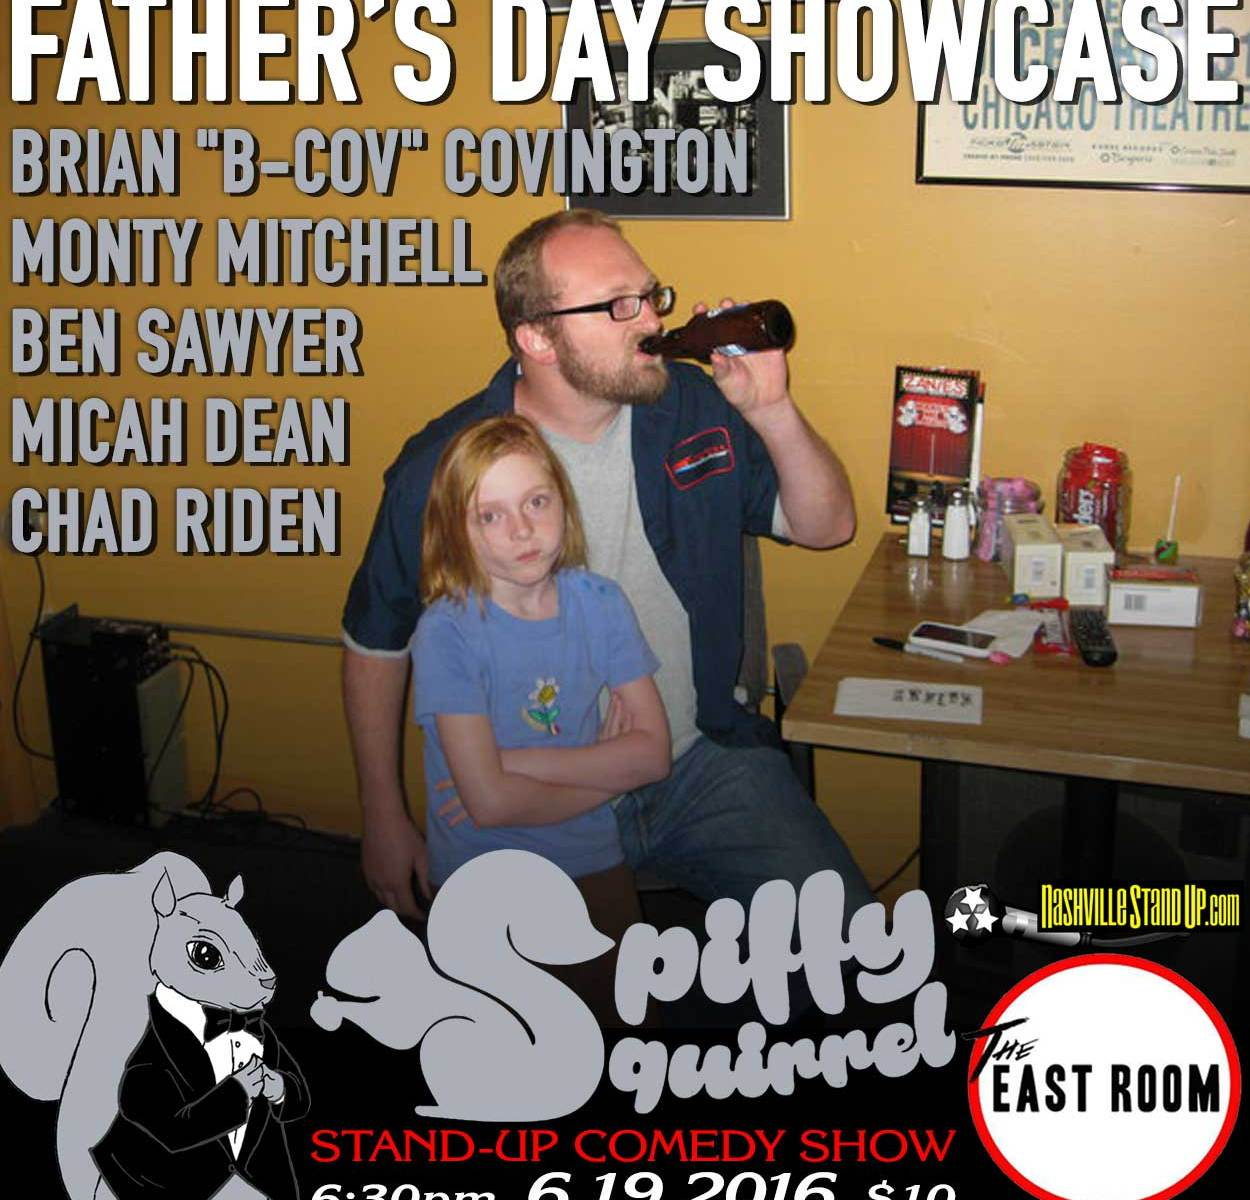 """Spiffy Squirrel Comedy Show's Father's Day Showcase: Brian """"B-Cov"""" Covington, Monty Mitchell, Ben Sawyer, Micah Dean, Chad Riden. 6:30pm Sunday 6/19 at The East Room!"""